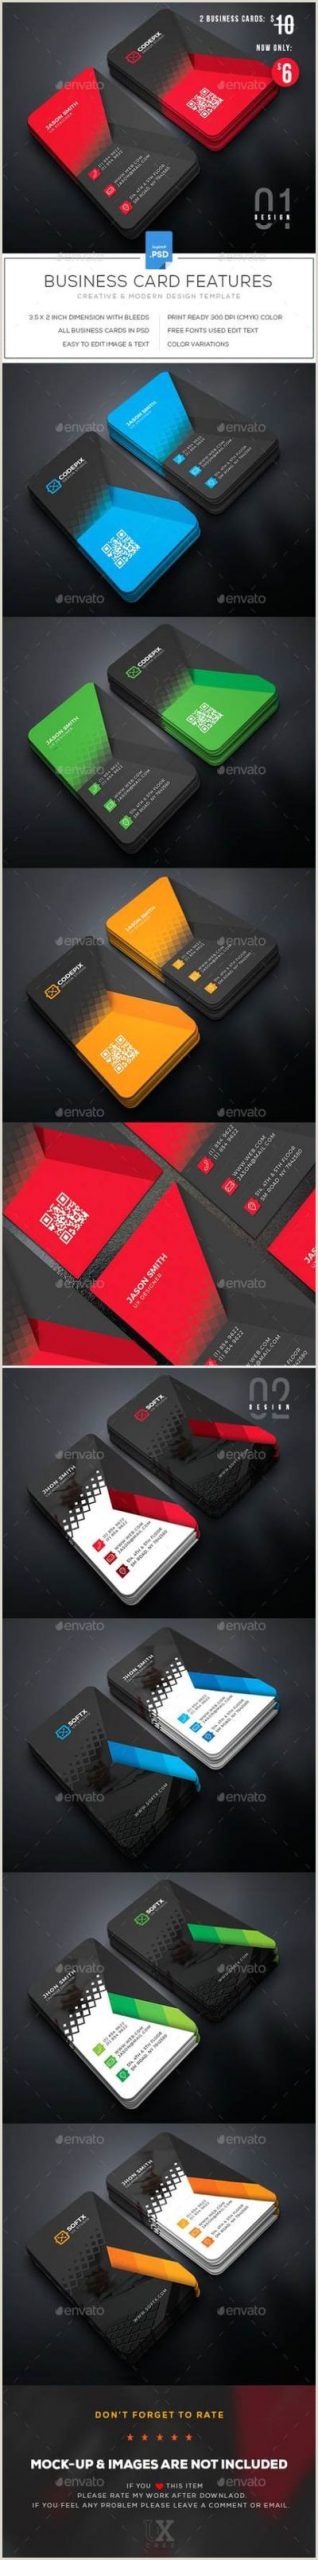 Vintage Business Cards Templates Free Creative Modern Polygon Business Card